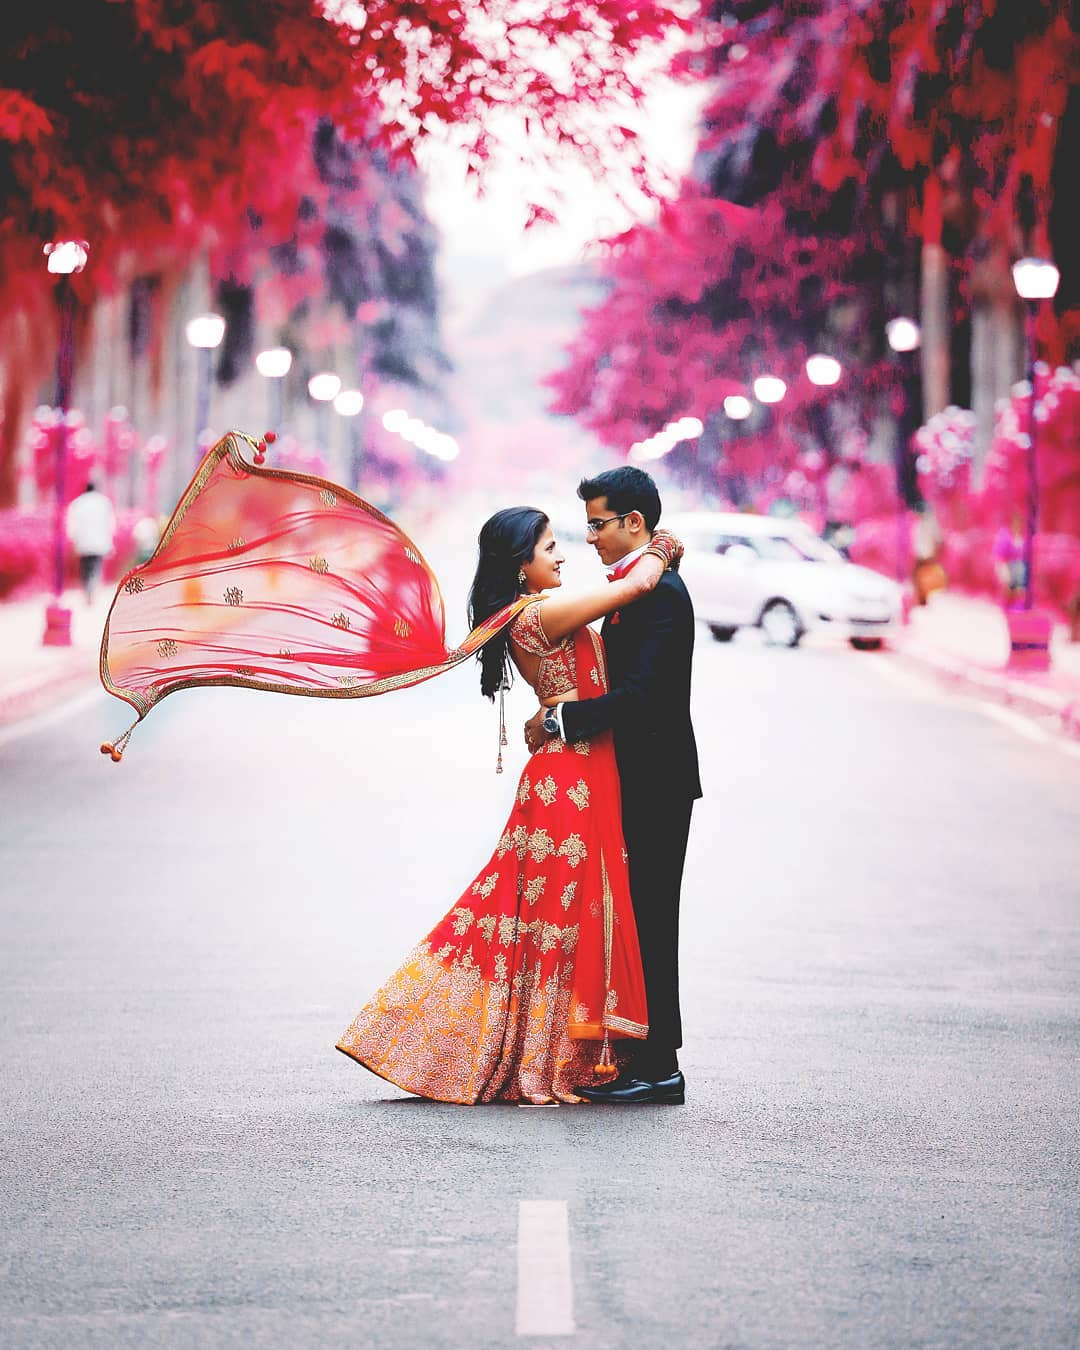 Be mine forever: Pre-wedding Photoshoot for Indian Couples